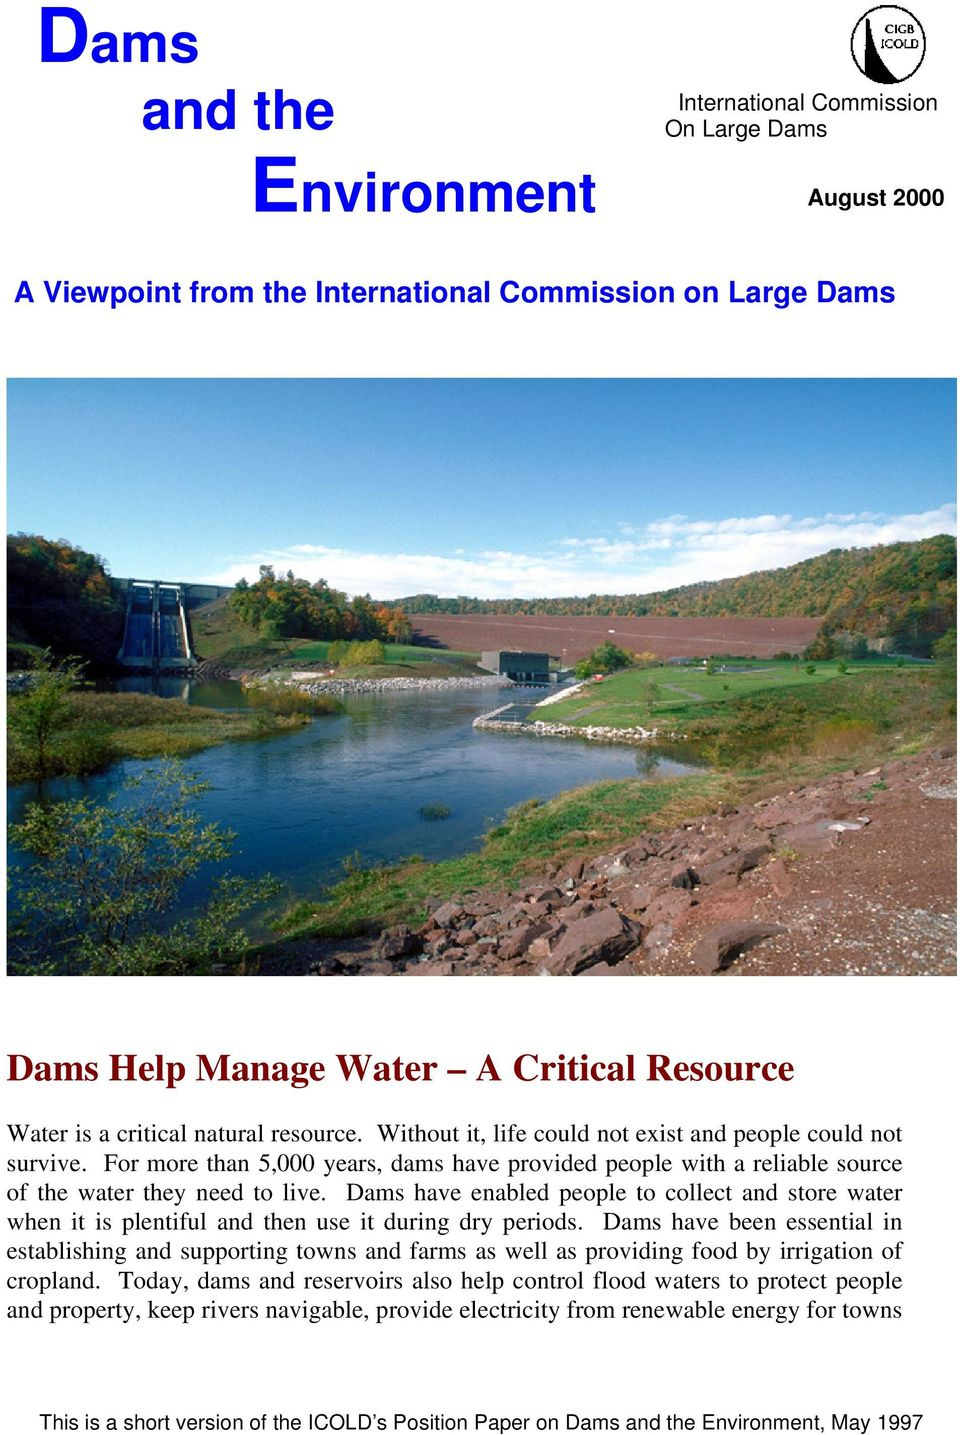 Dams have enabled people to collect and store water when it is plentiful and then use it during dry periods.